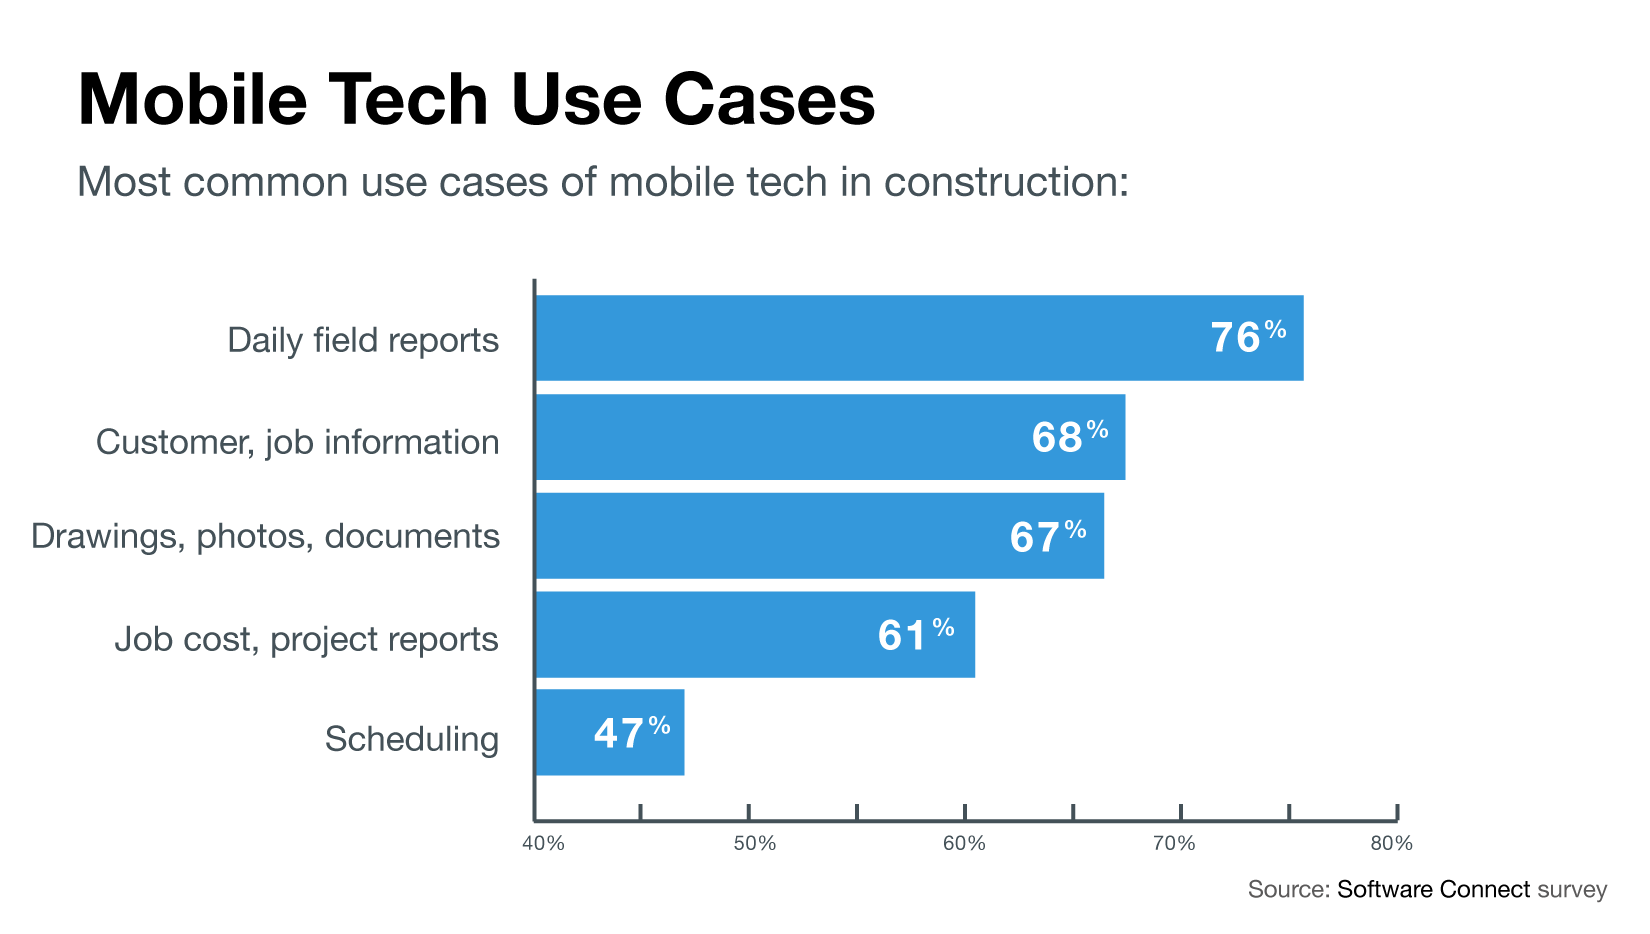 Chart detailing the most common use cases for mobile software in construction